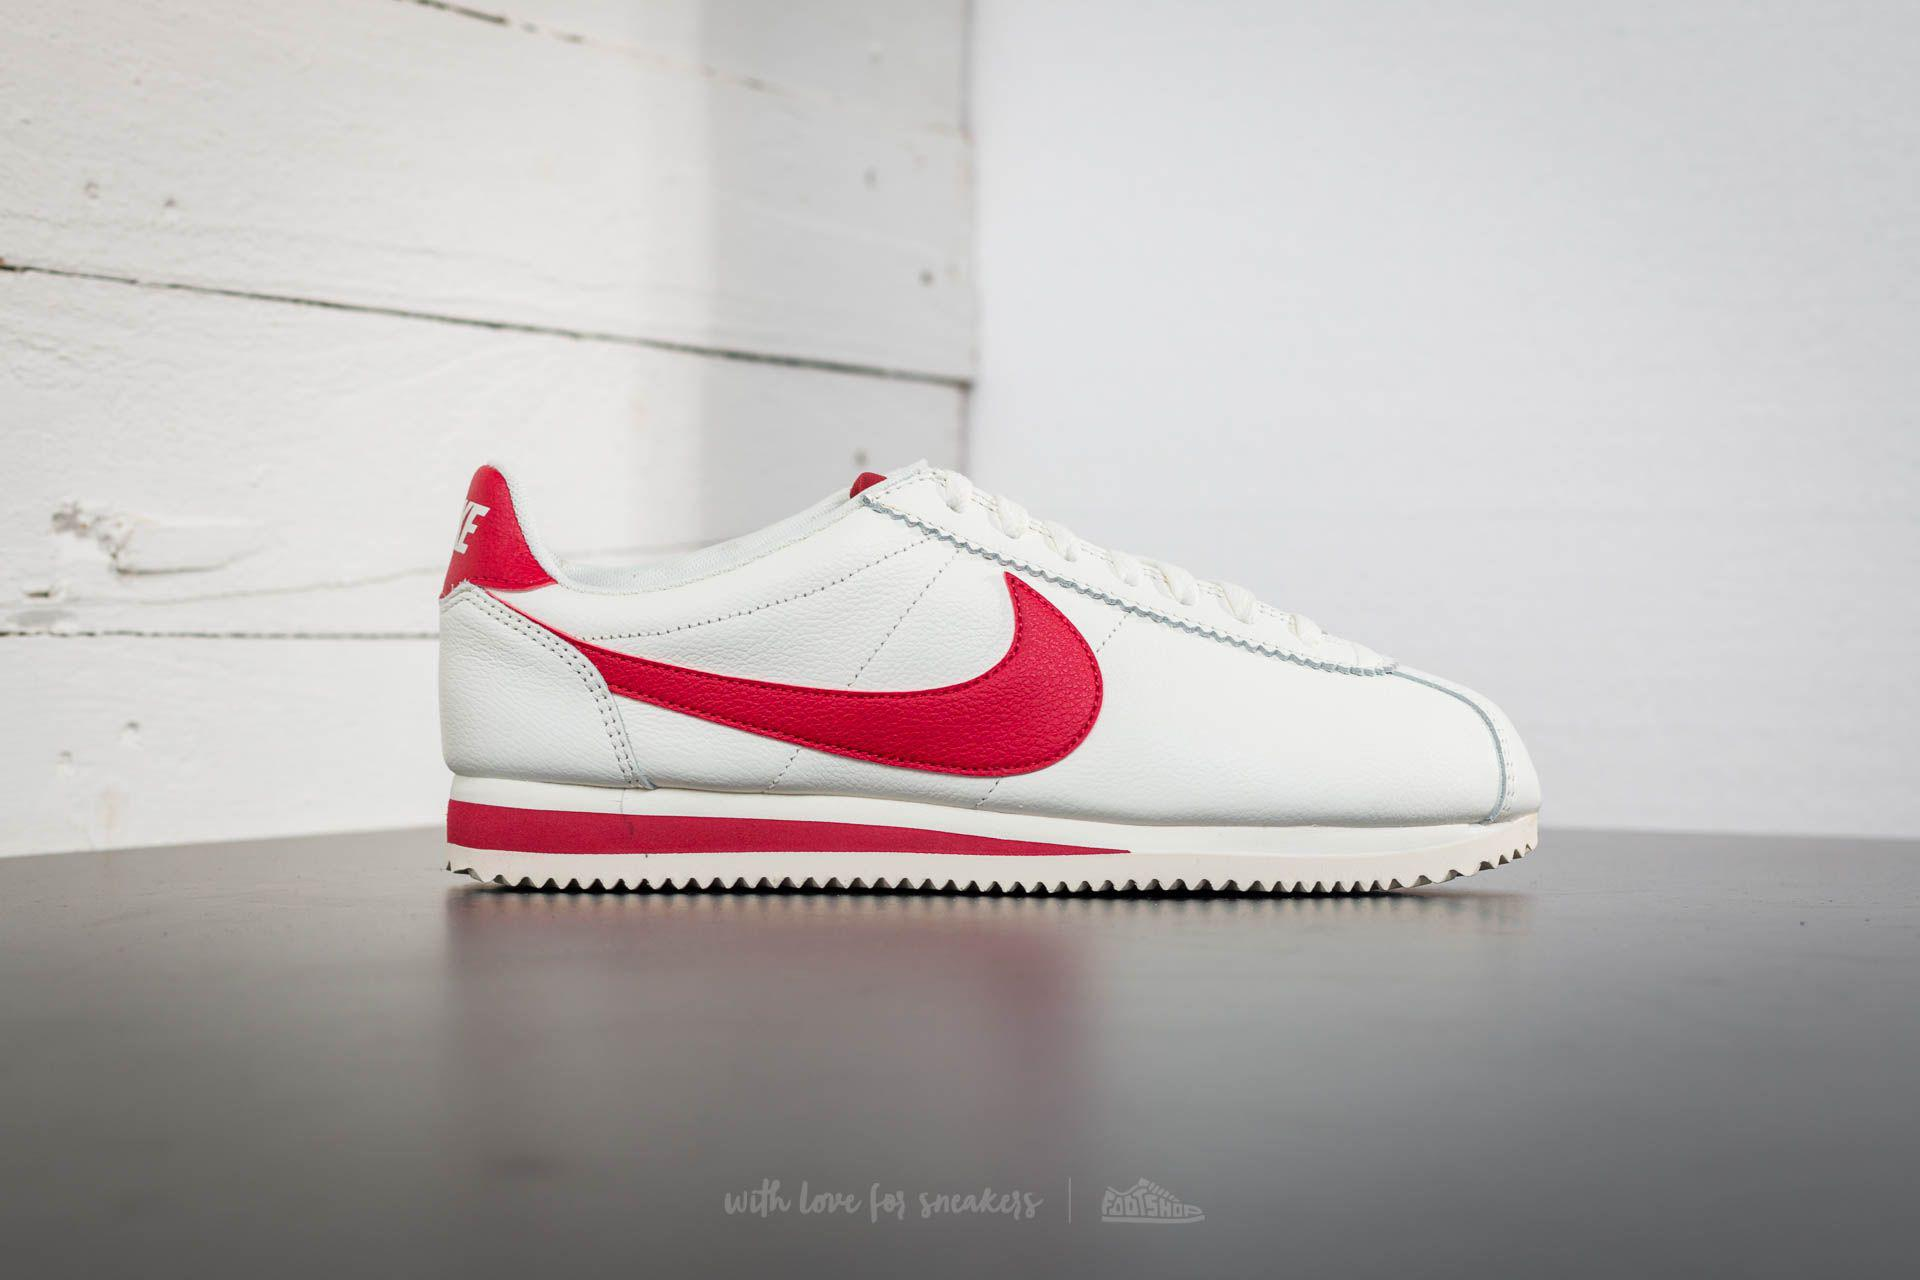 wholesale dealer 54d92 b4fa7 Nike Classic Cortez Leather Se Sail  Gym Red in Red for Men - Lyst